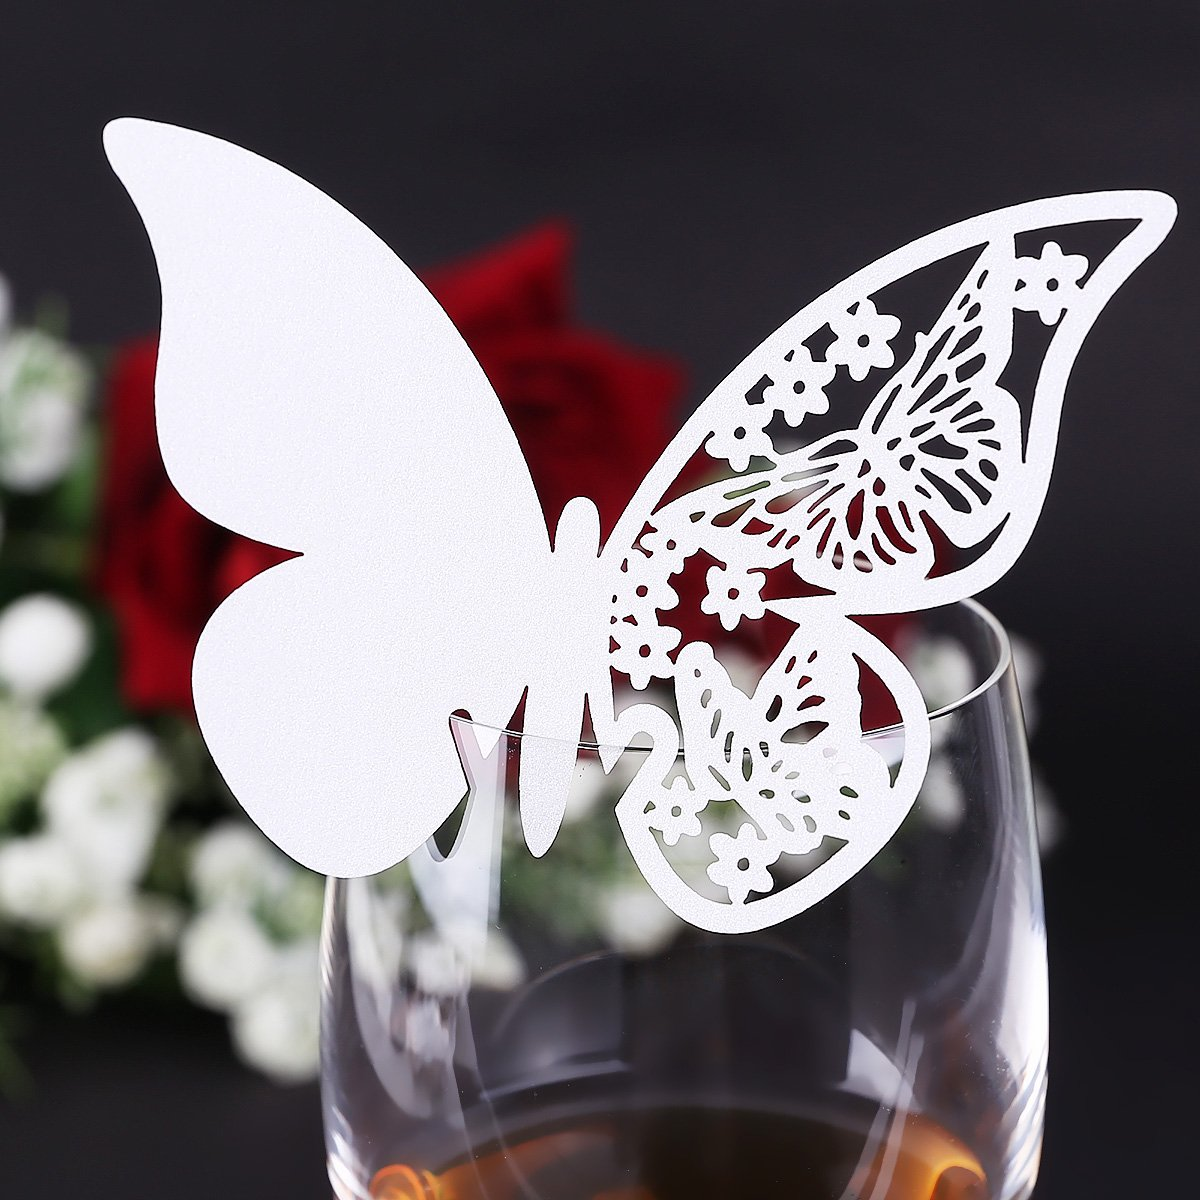 GSFY! 20 pcs Glass Card Holder Brand Names butterfly-Places # 941 white wedding baptism decoration<br><br>Aliexpress